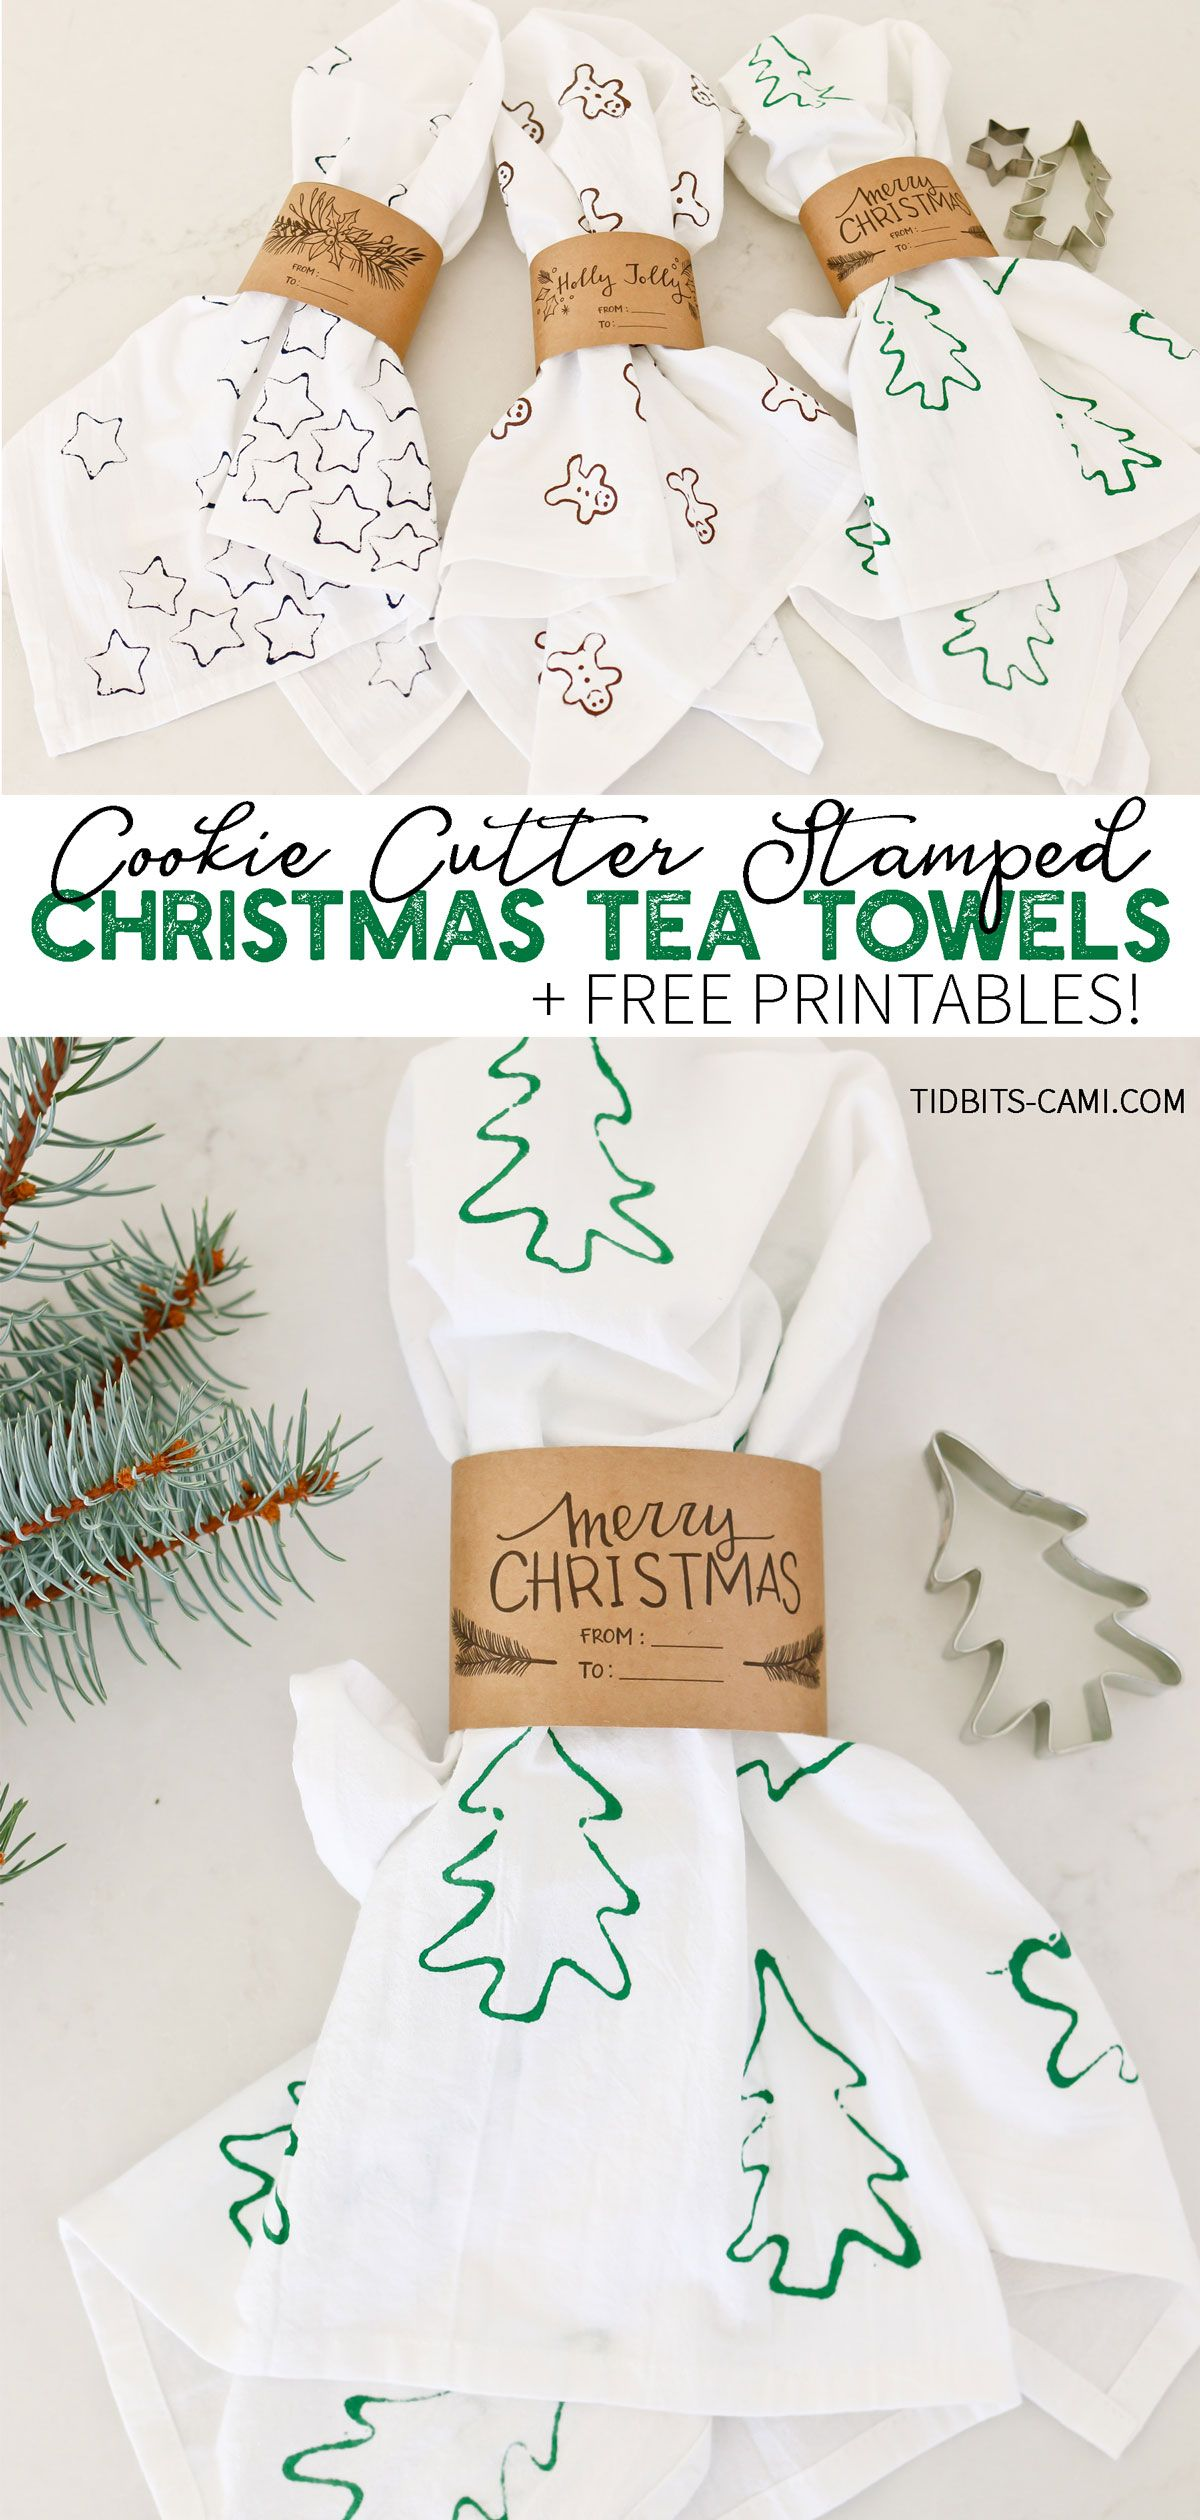 Cookie Cutter Stamped Christmas Tea Towels - Tidbits